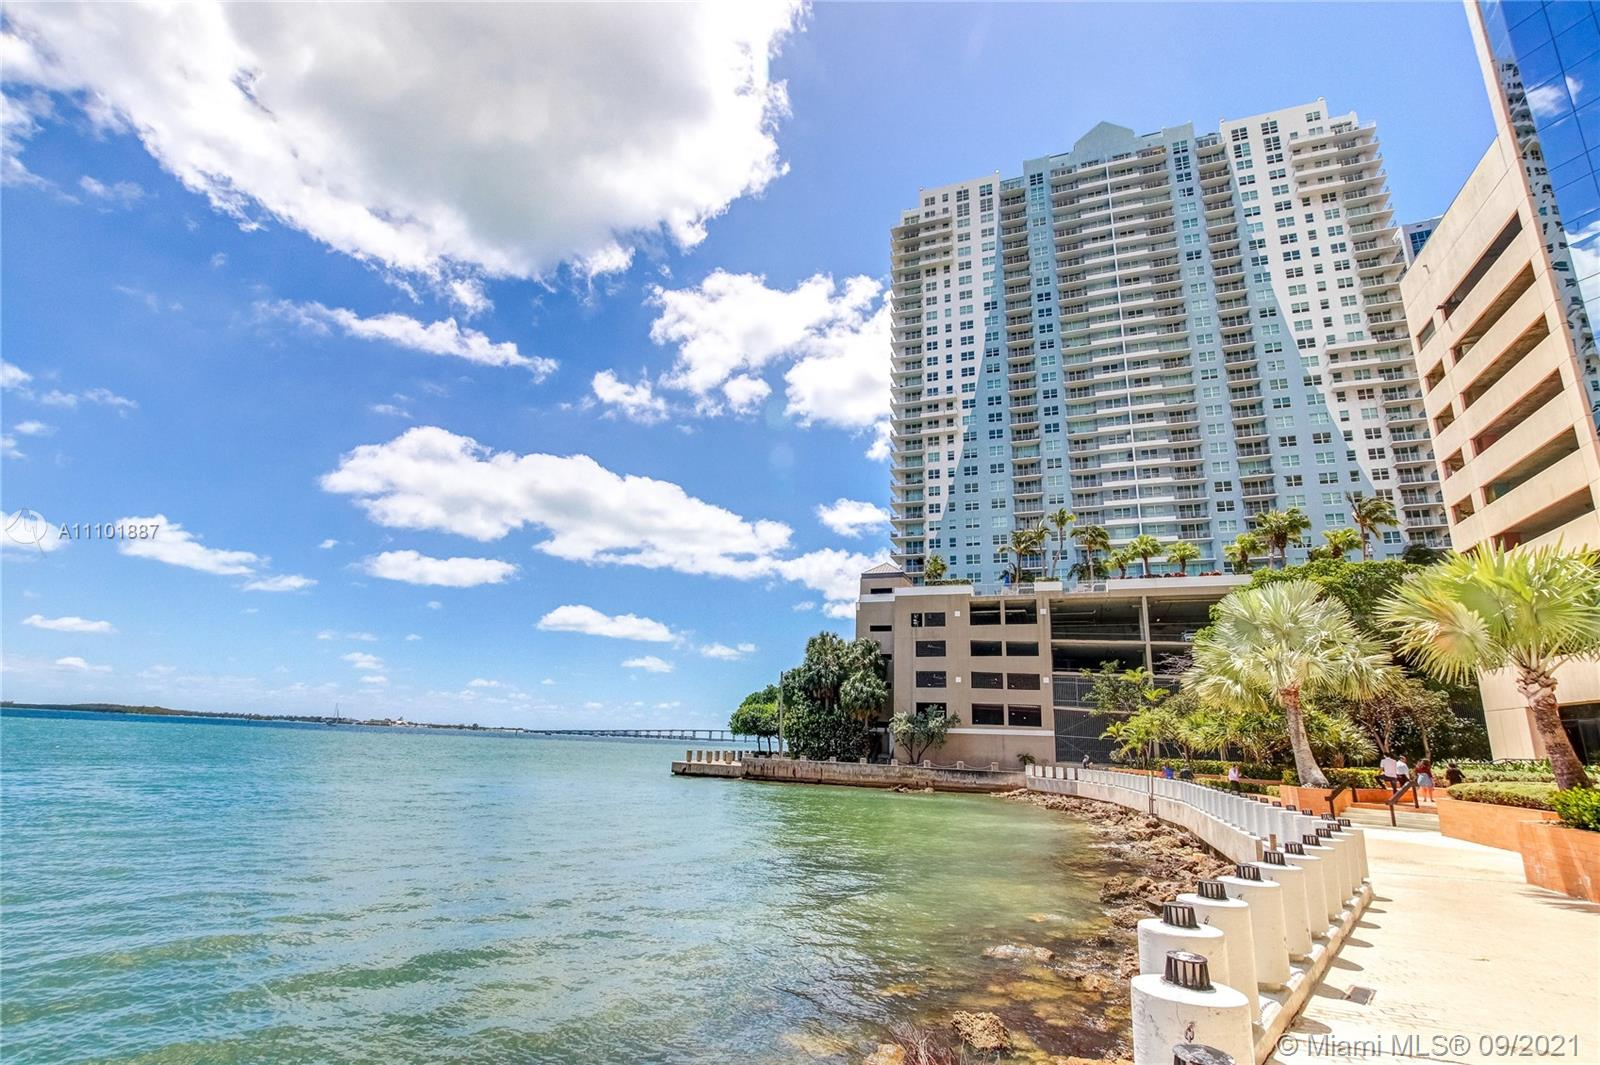 Condo For Rent at Yacht Club Brickell